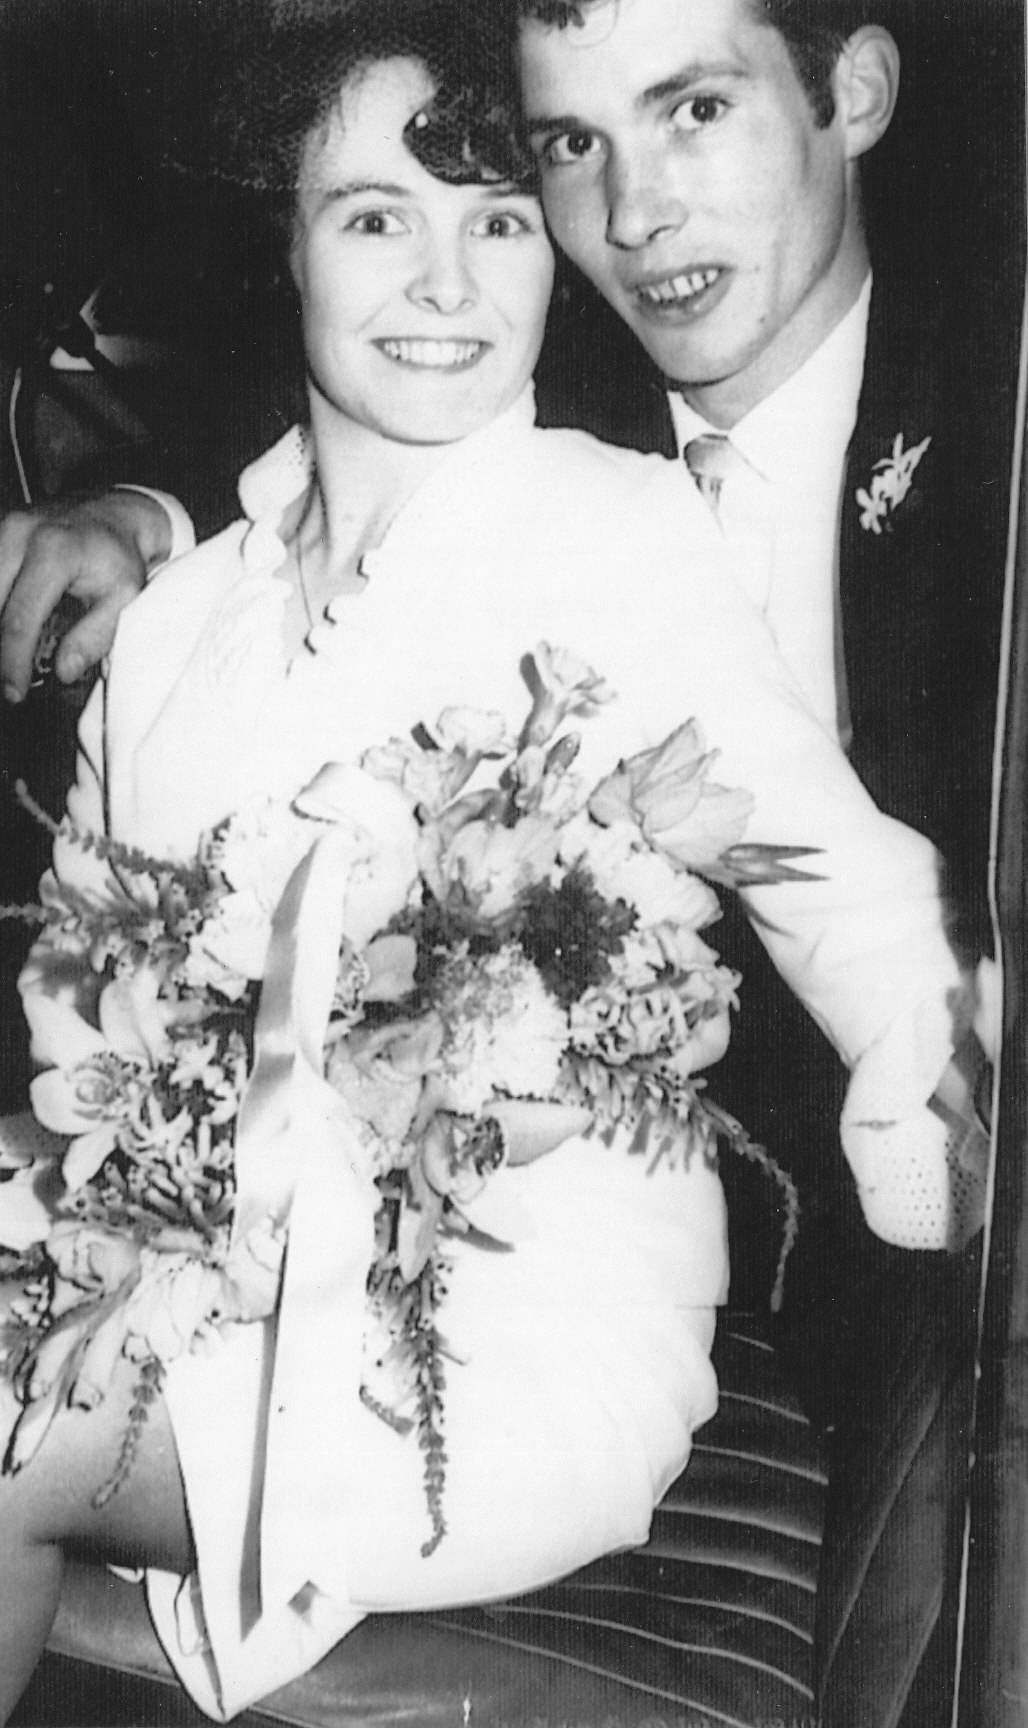 Mum and dad on their wedding day 1965